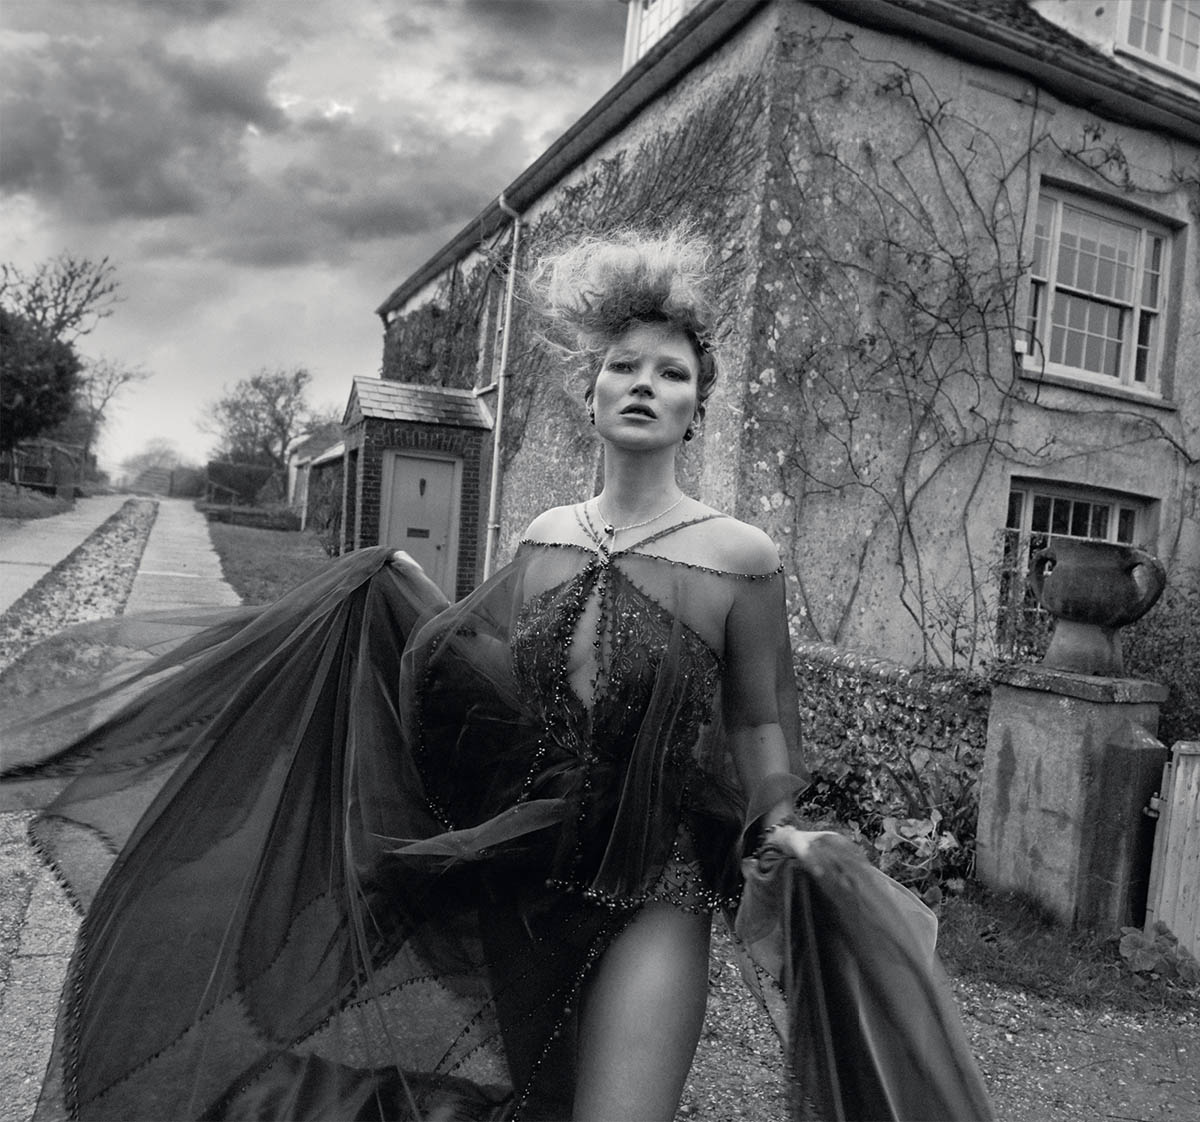 Kate Moss by Mert & Marcus for British Vogue March 2021